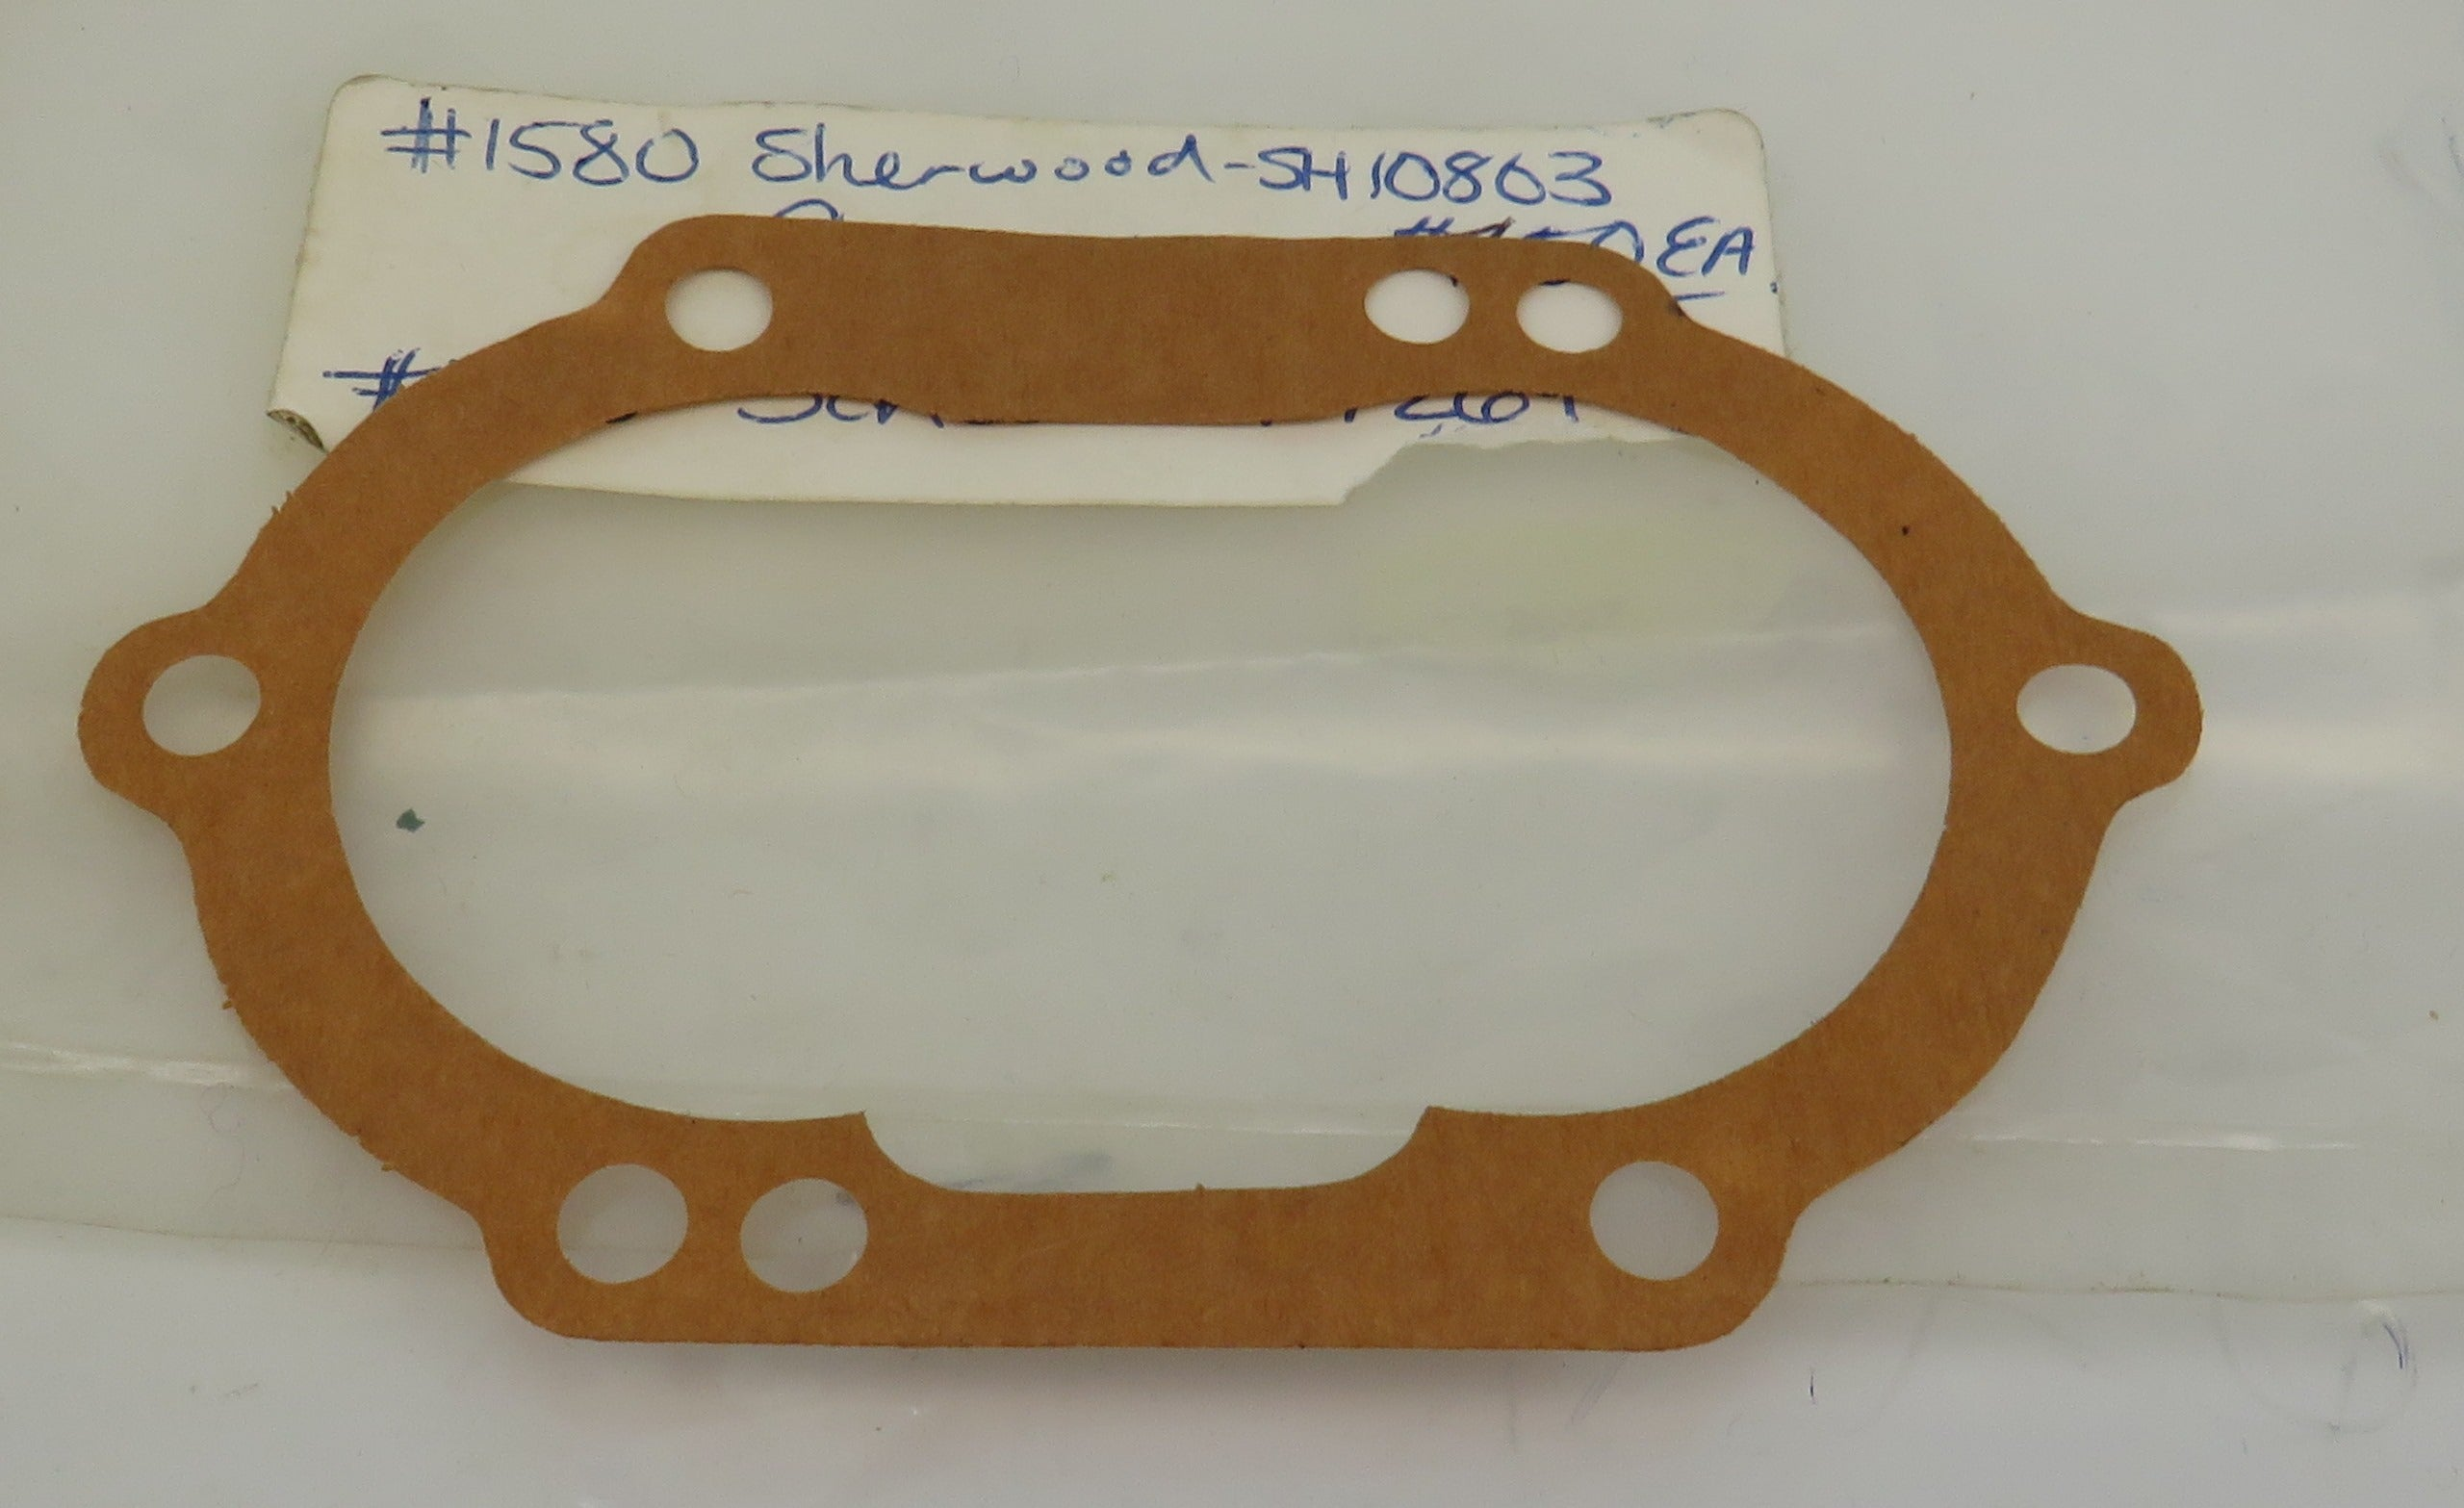 10803 Sherwood Gaskets for Owens Flagship Q10750 (OBSOLETE)